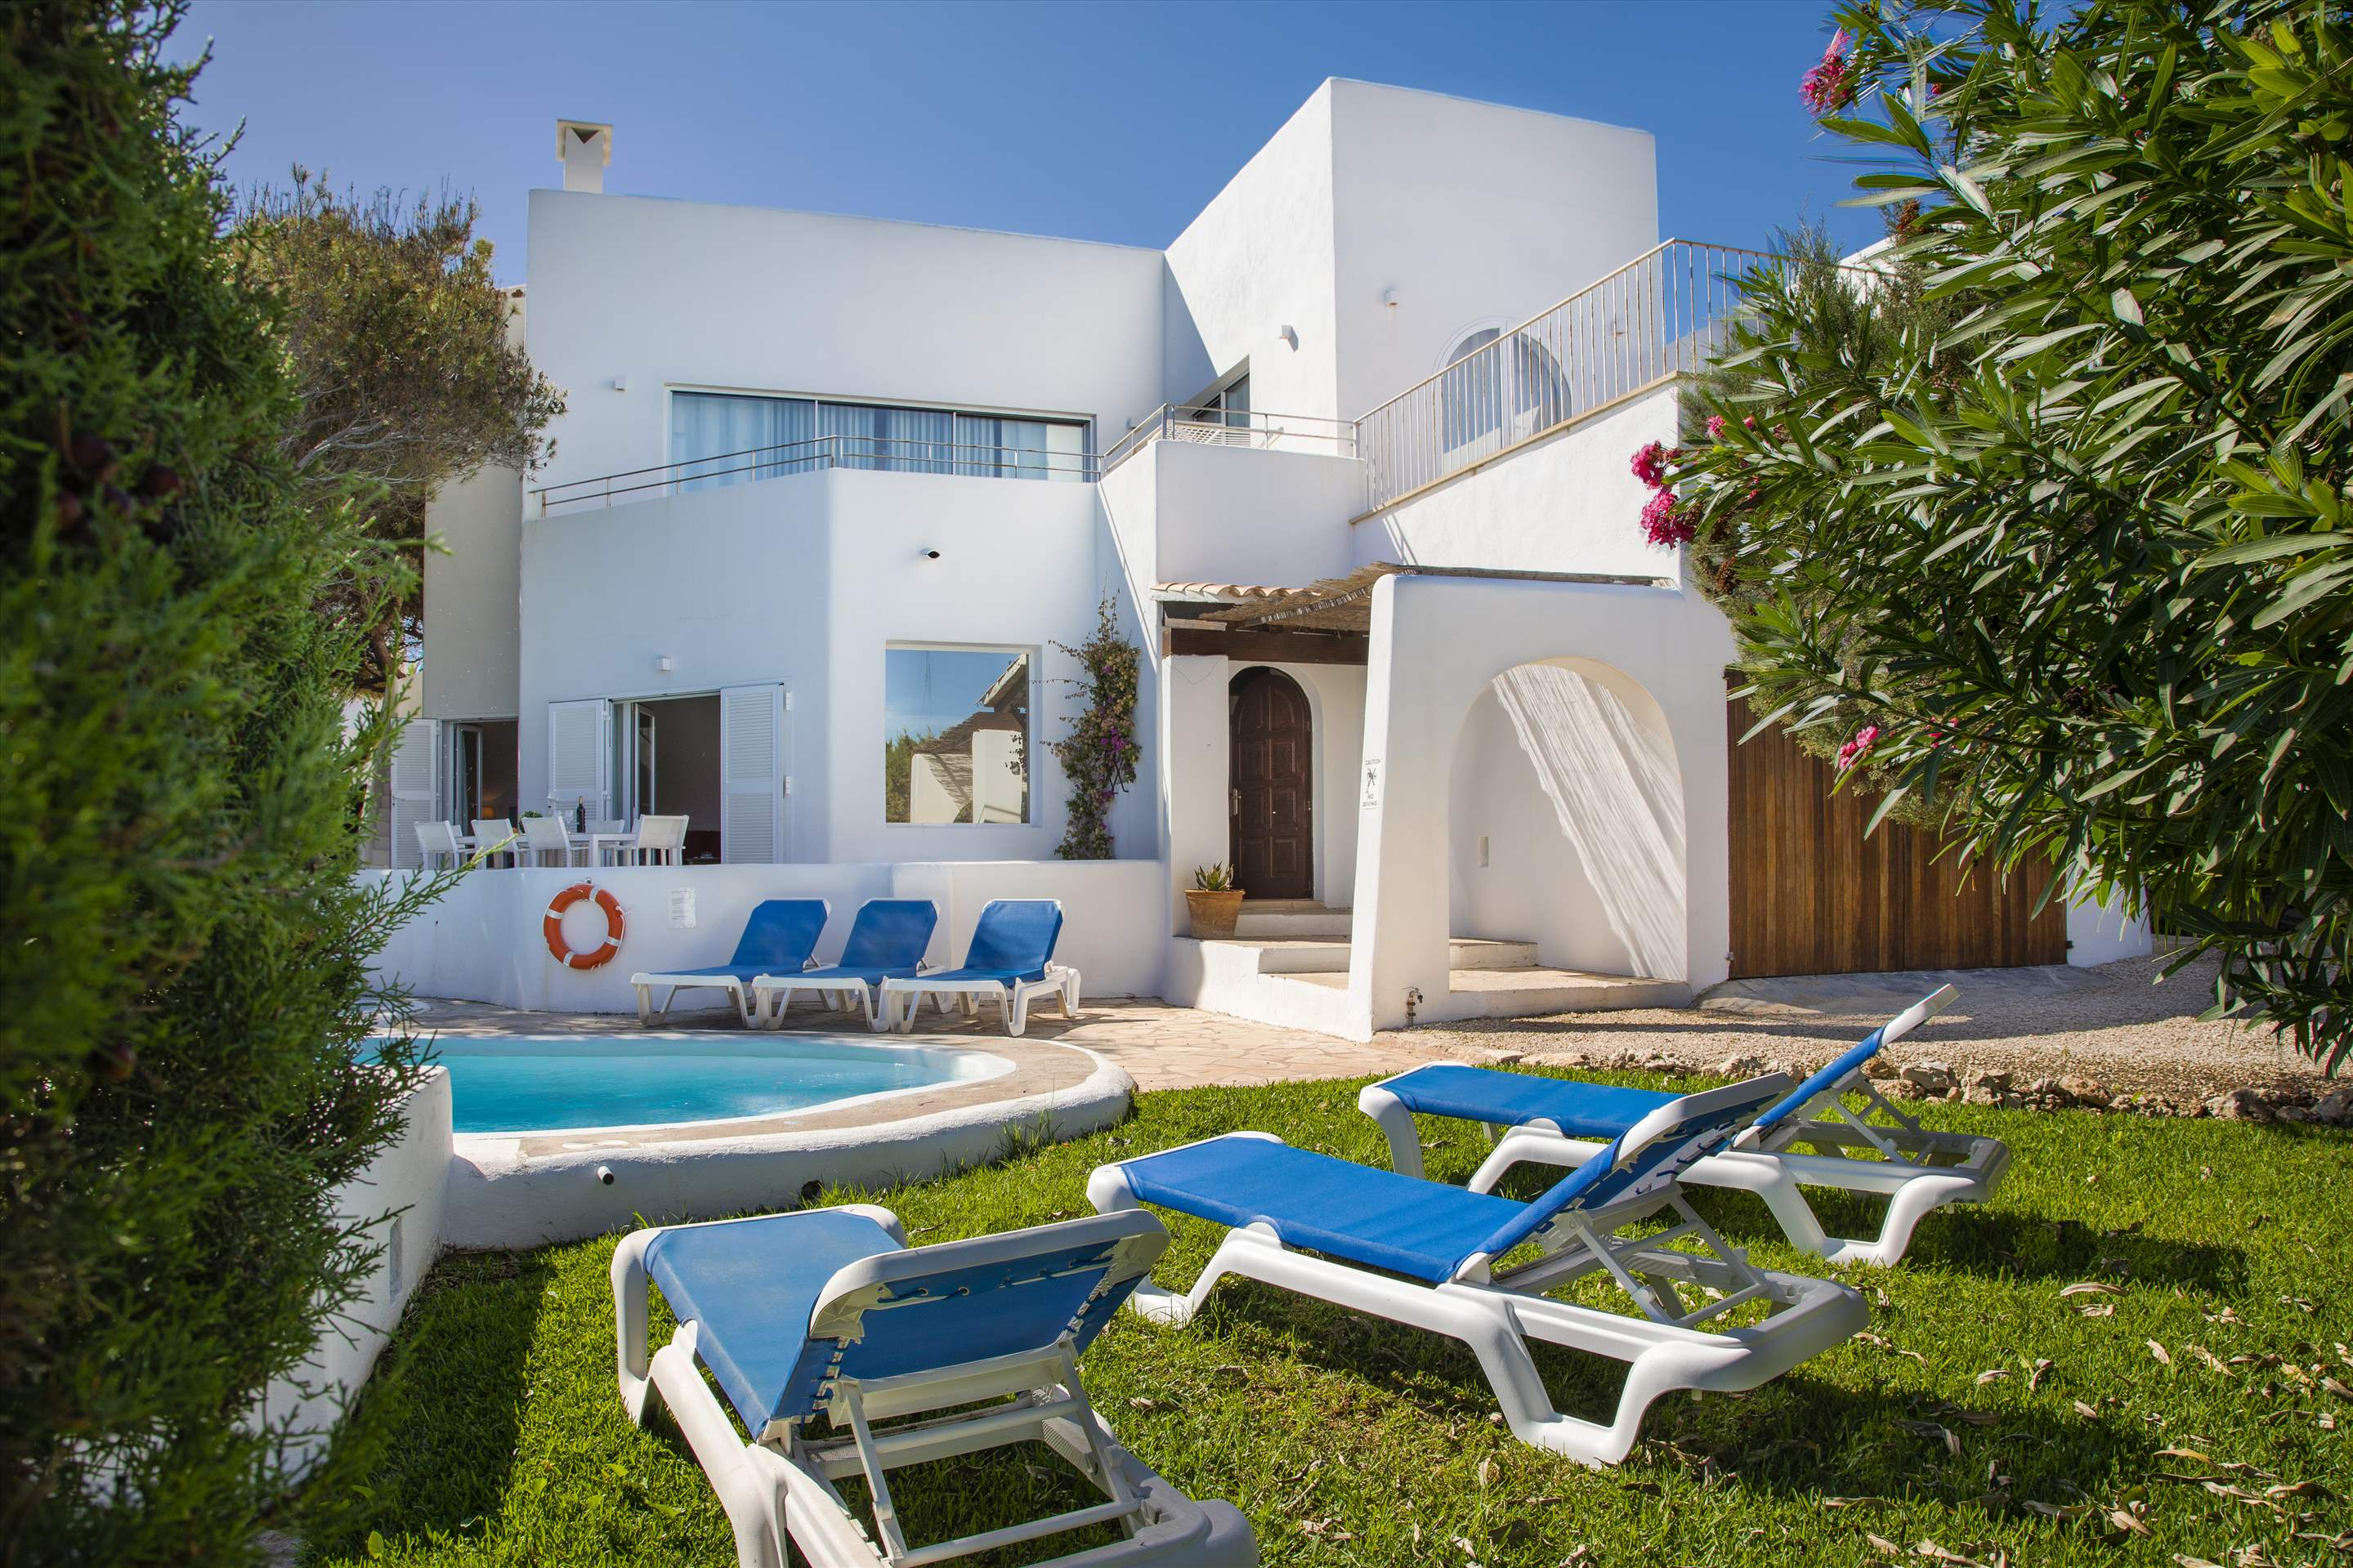 Mar Gran, 4 bedroom villa in Cala d'Or , Majorca Photo #1